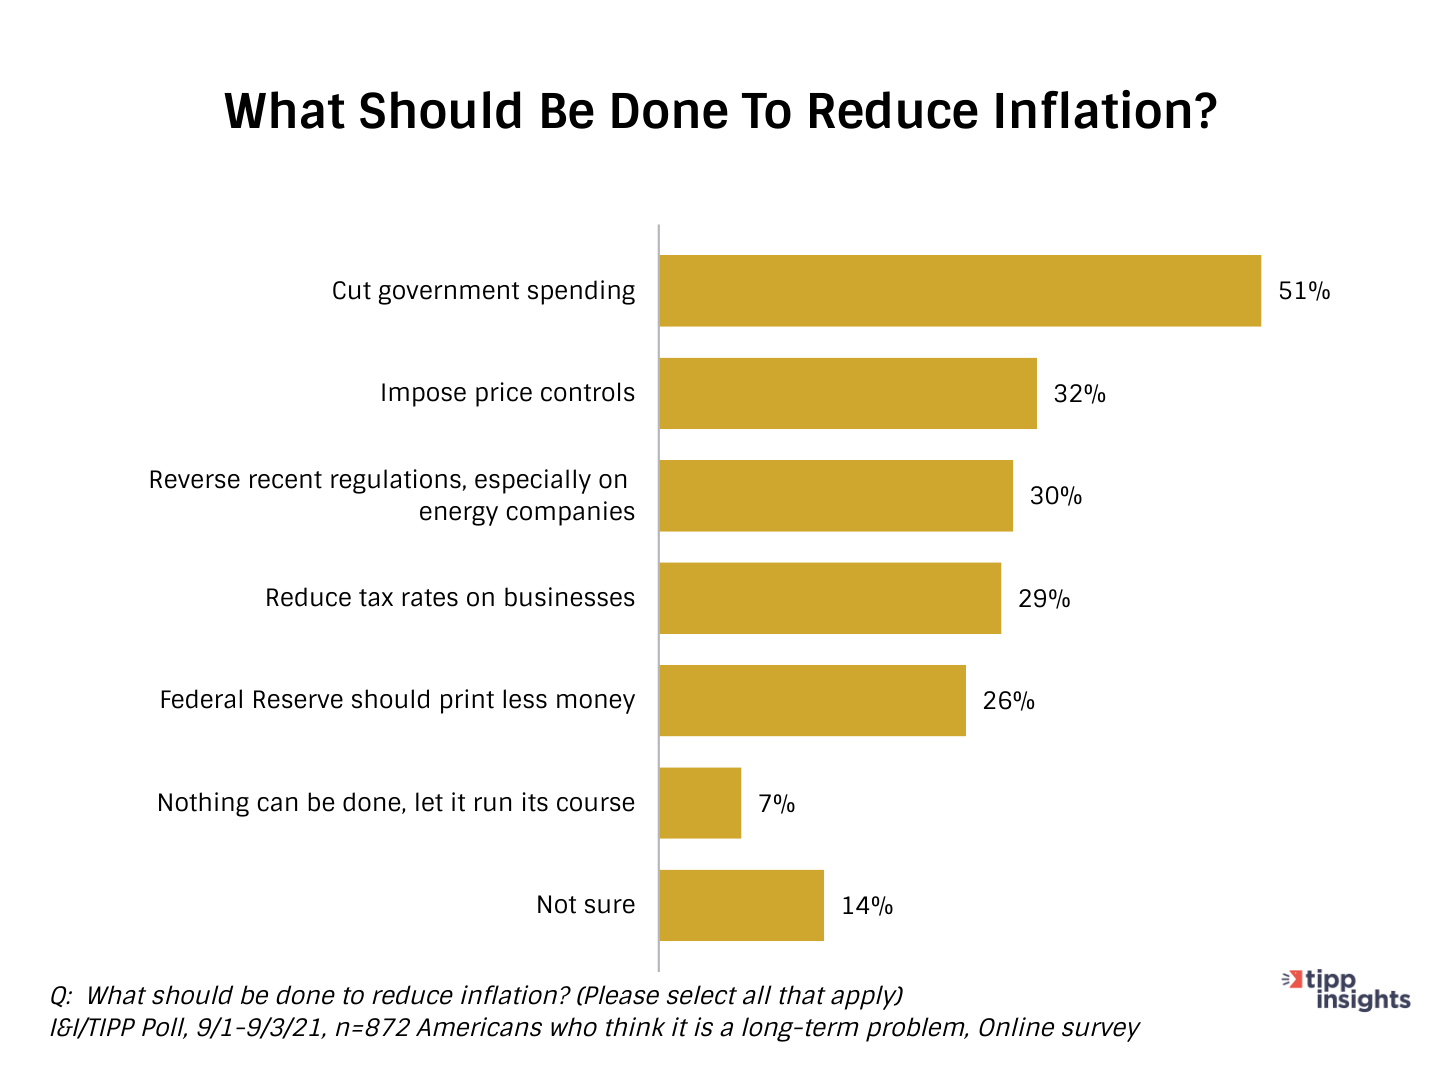 TIPP Poll results: What do Americans think should be done to Tame inflation